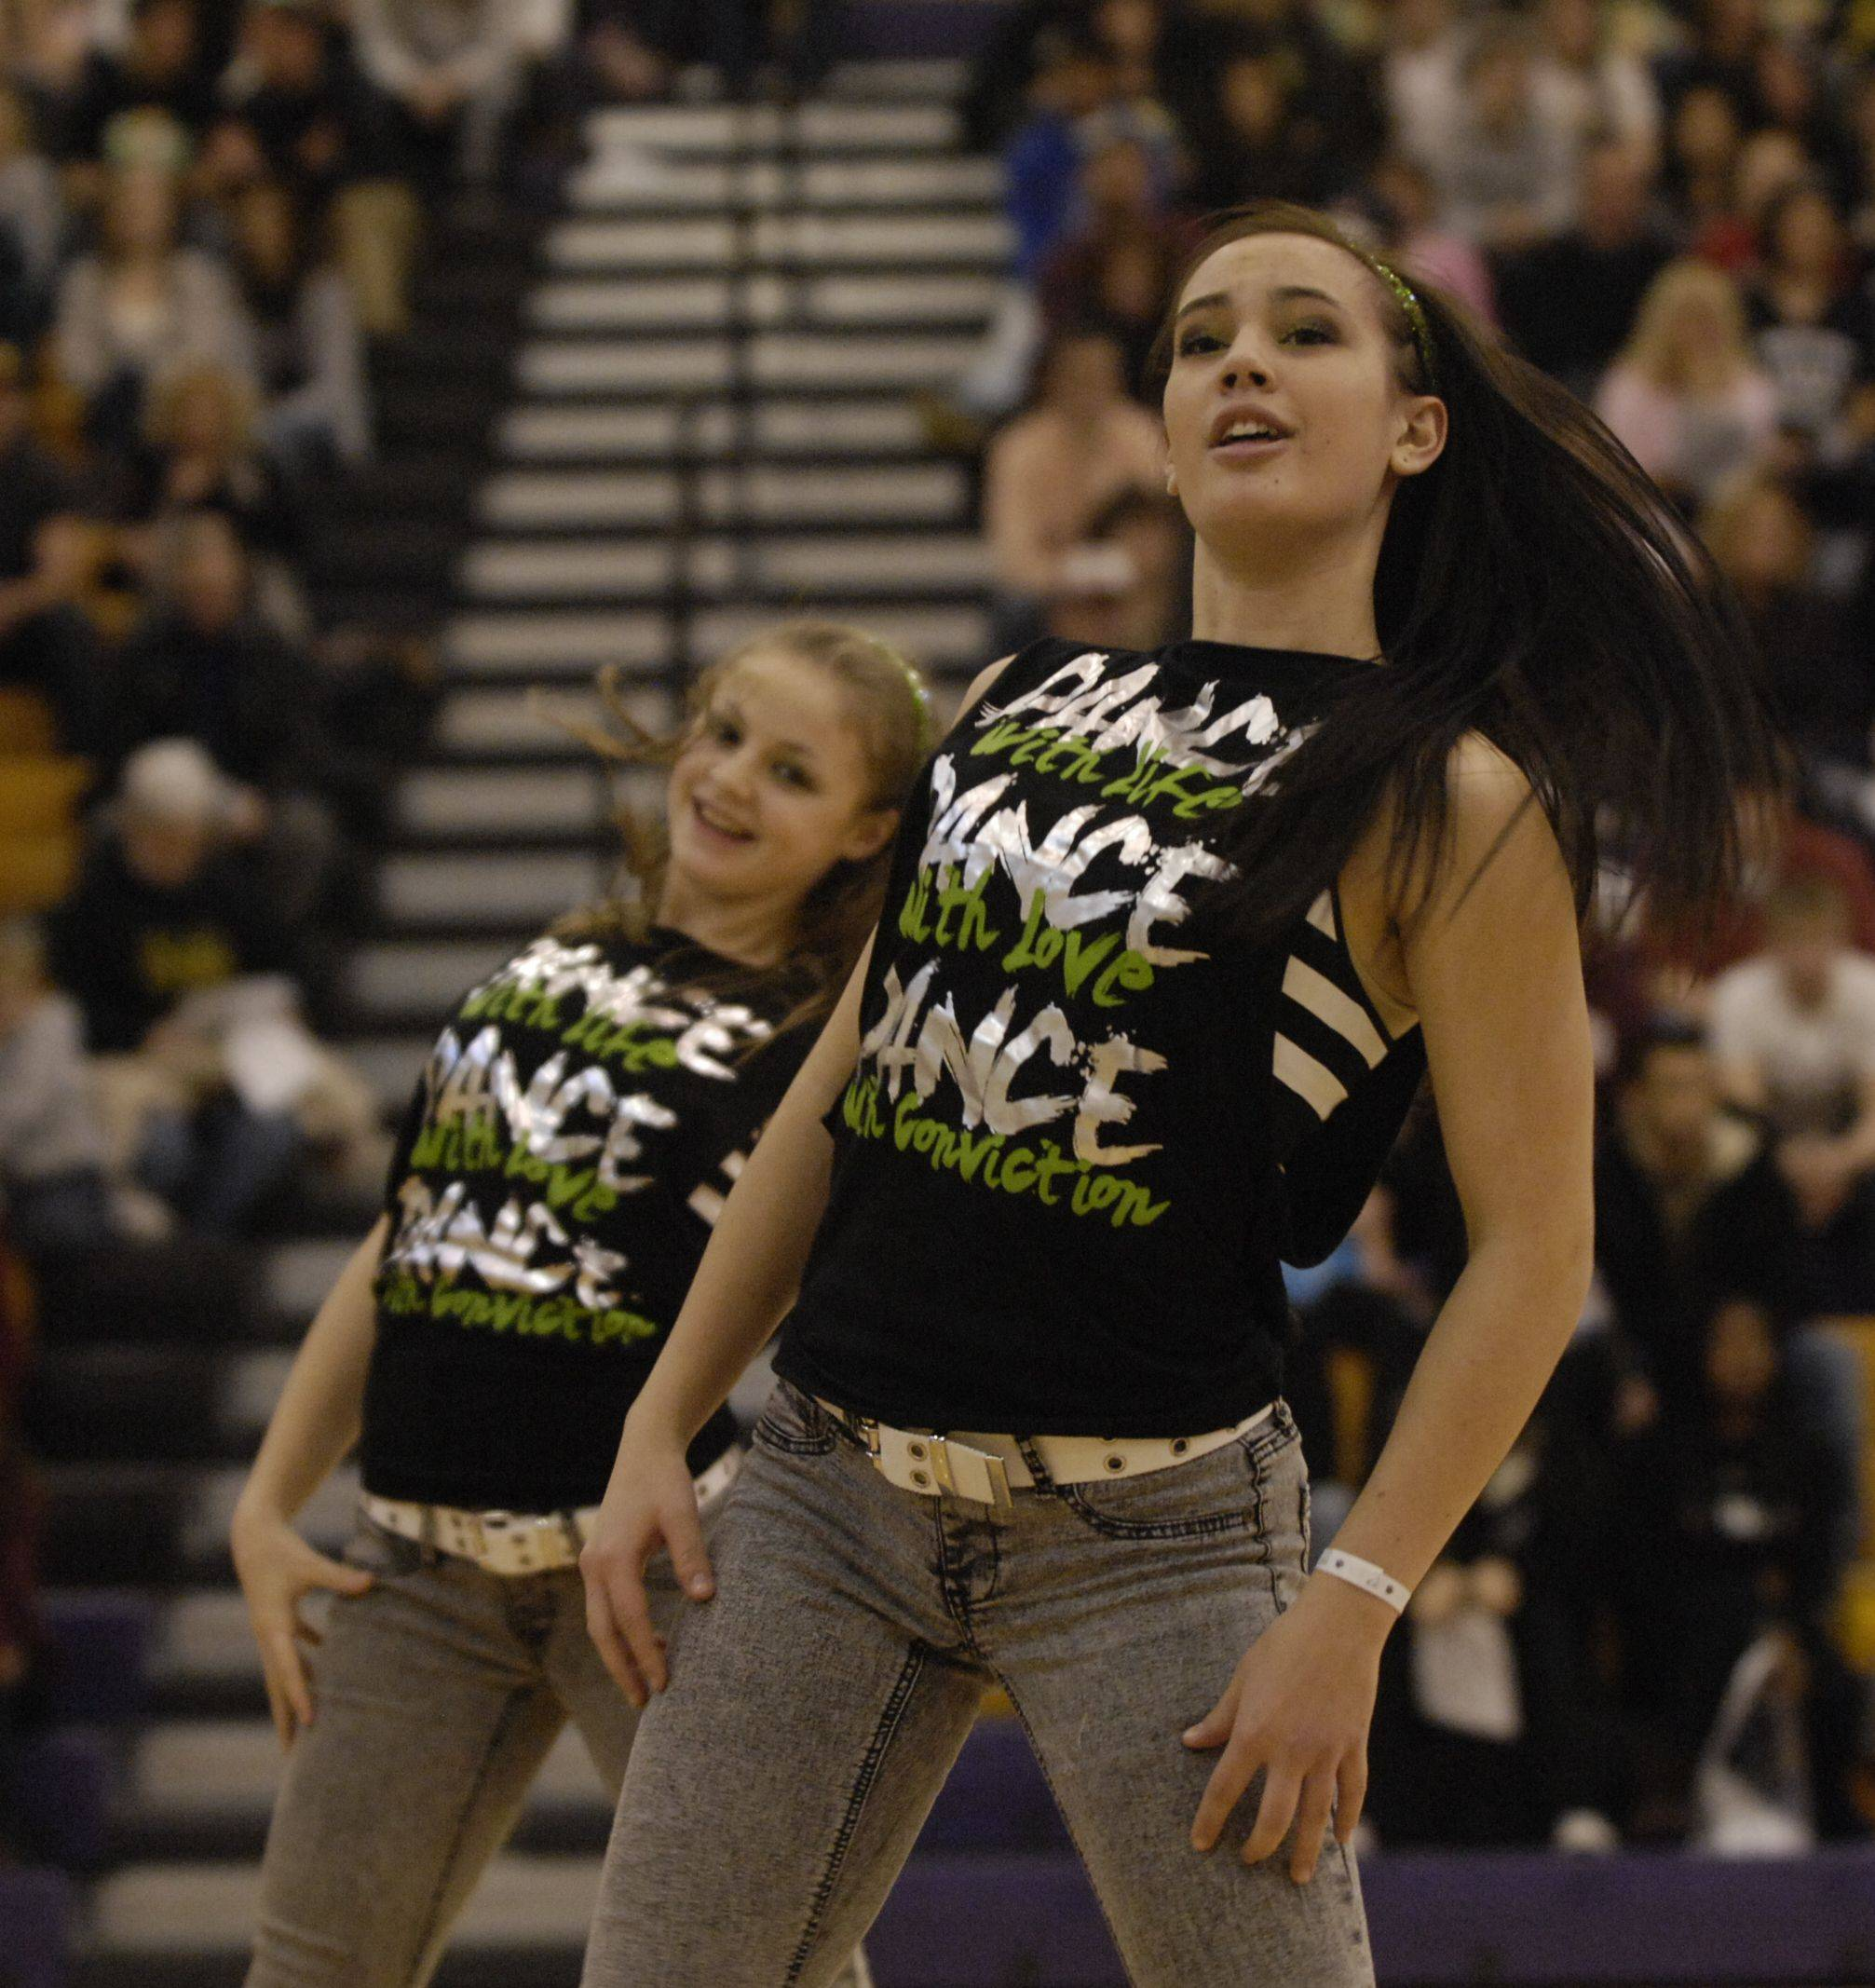 Grant High School AA Hip Hop, performs at the Team Dance Illinois Wauconda Invitational competition at Wauconda High School.